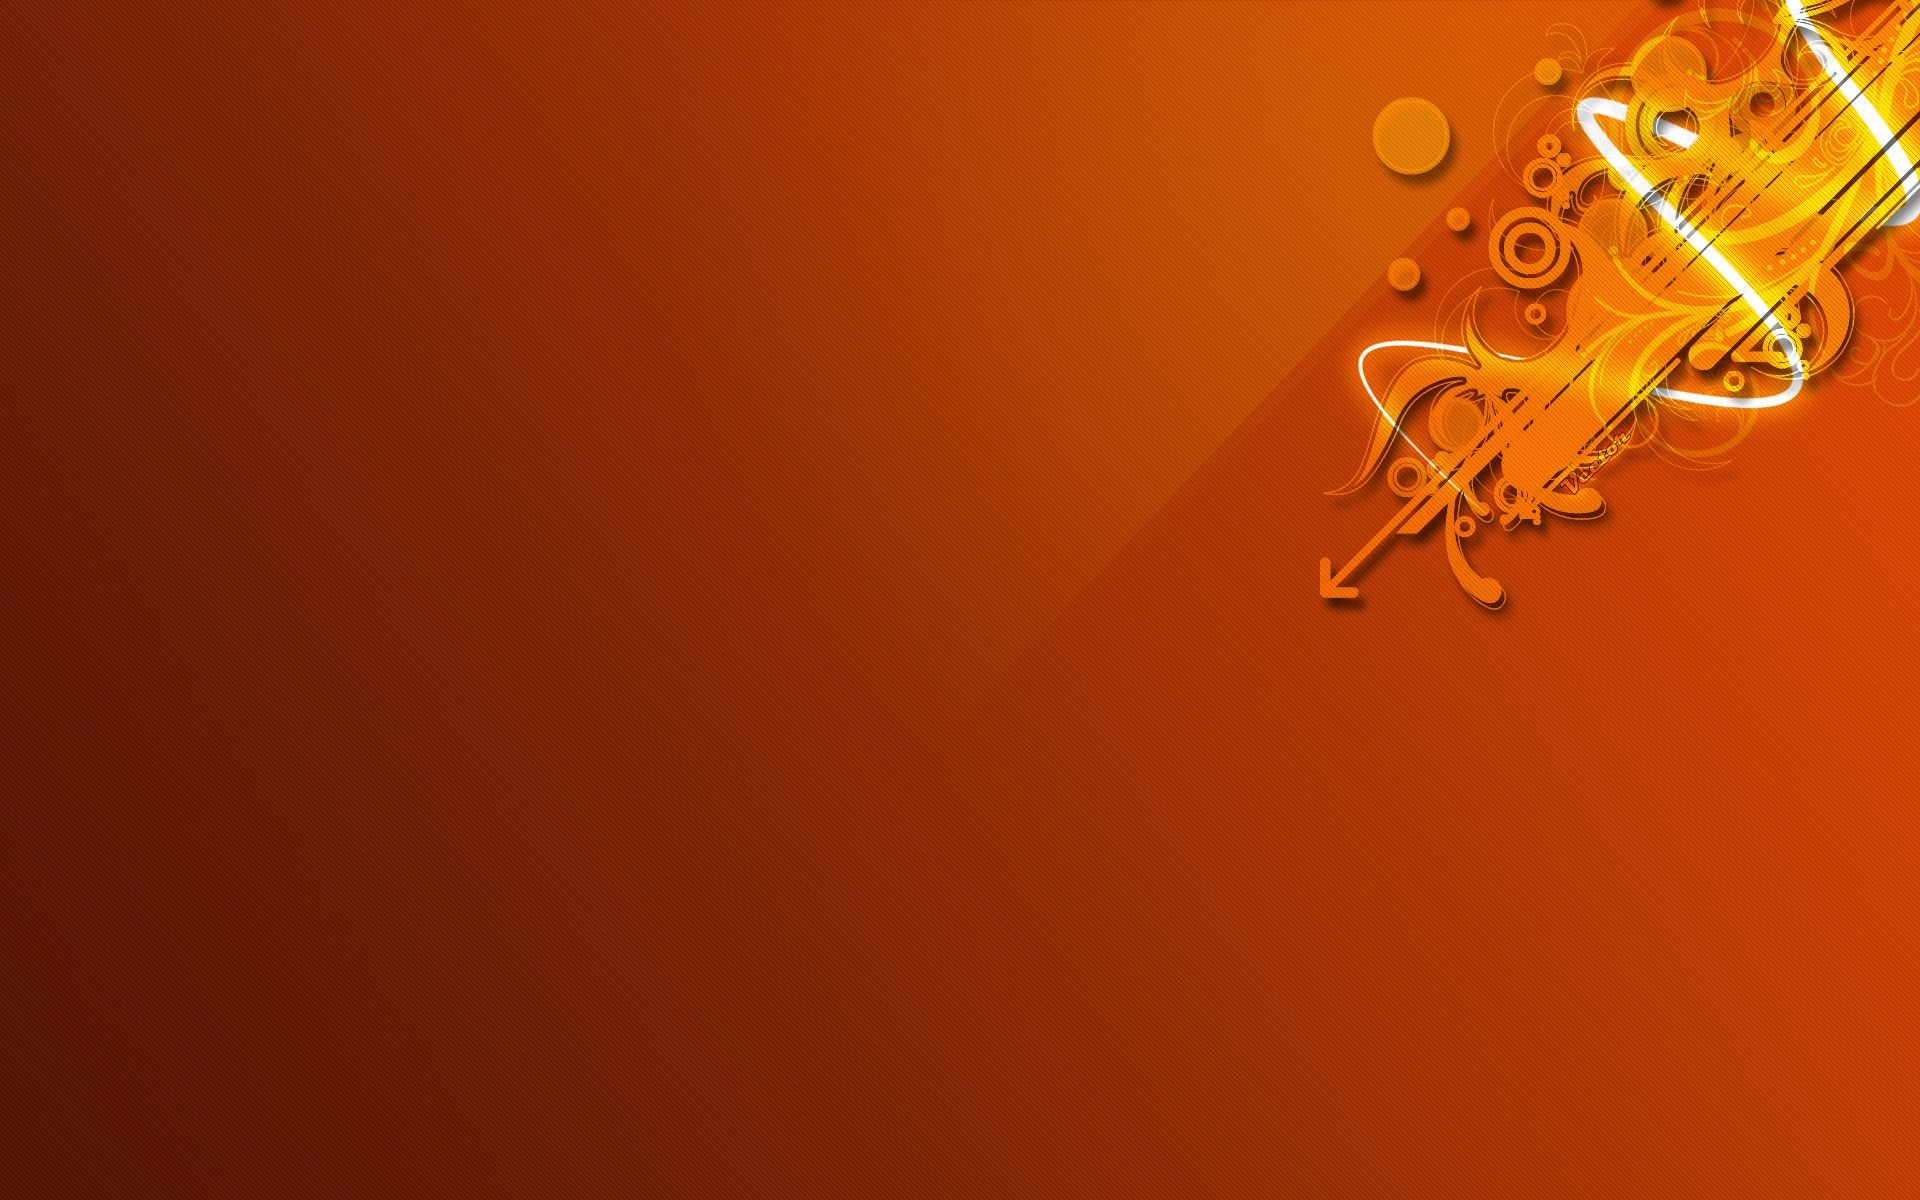 Res: 1920x1200, Orange Background Vectors Photos and PSD files Free Download